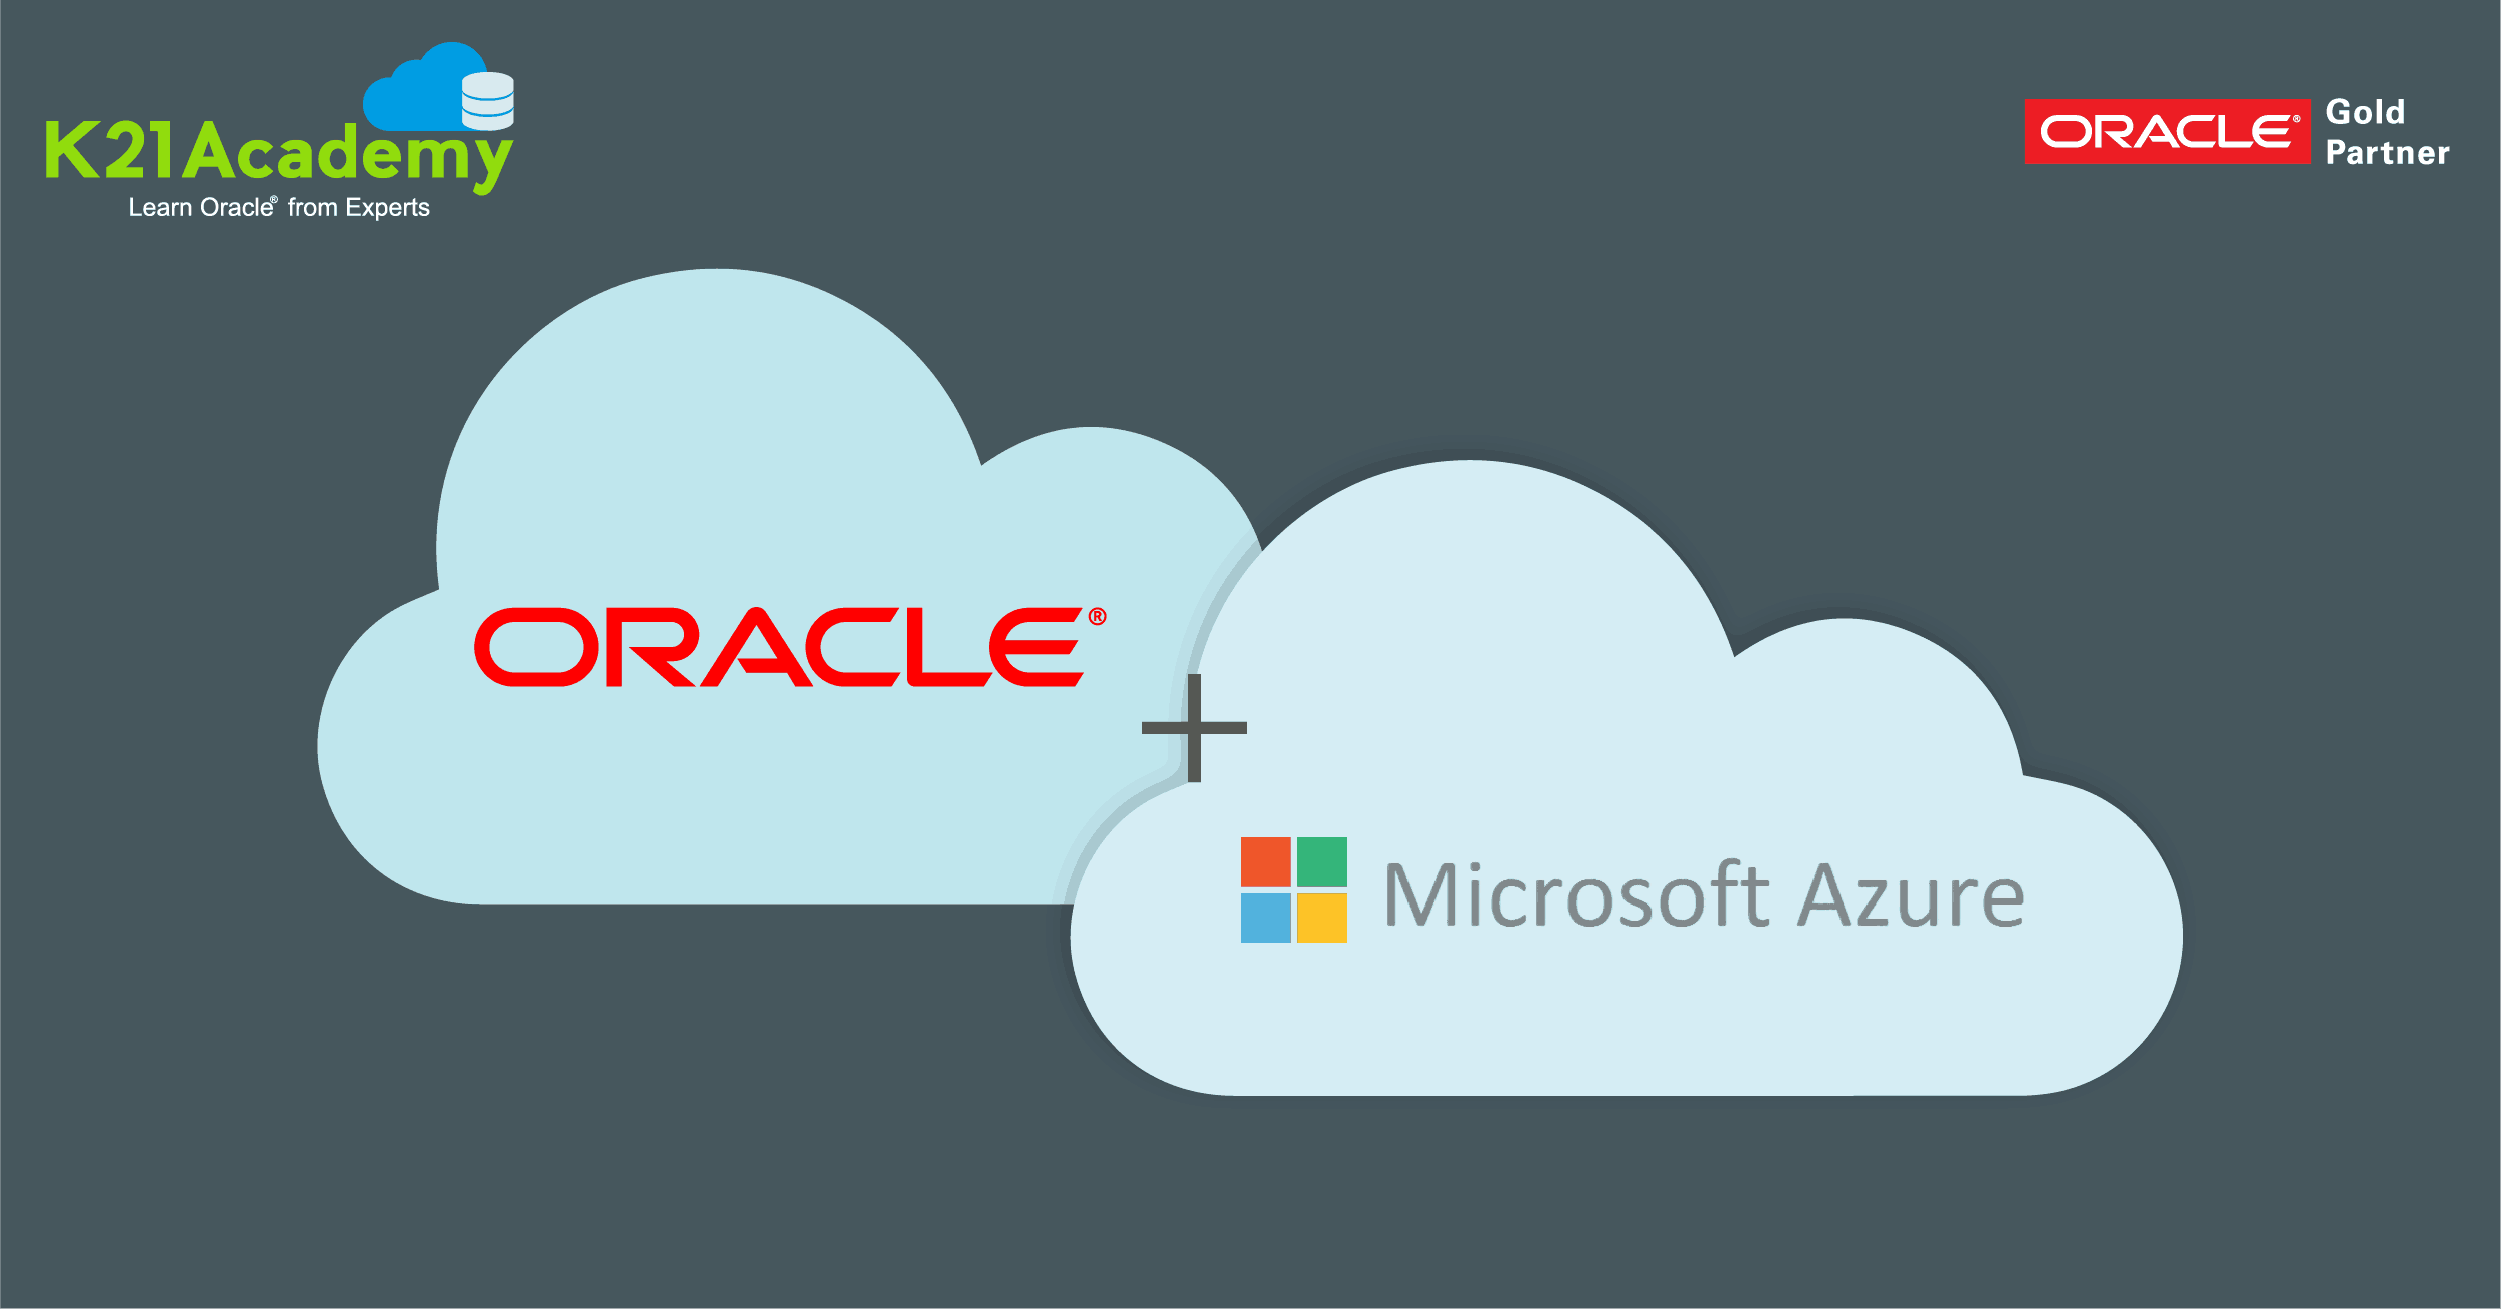 Interconnect Between Oracle and Microsoft